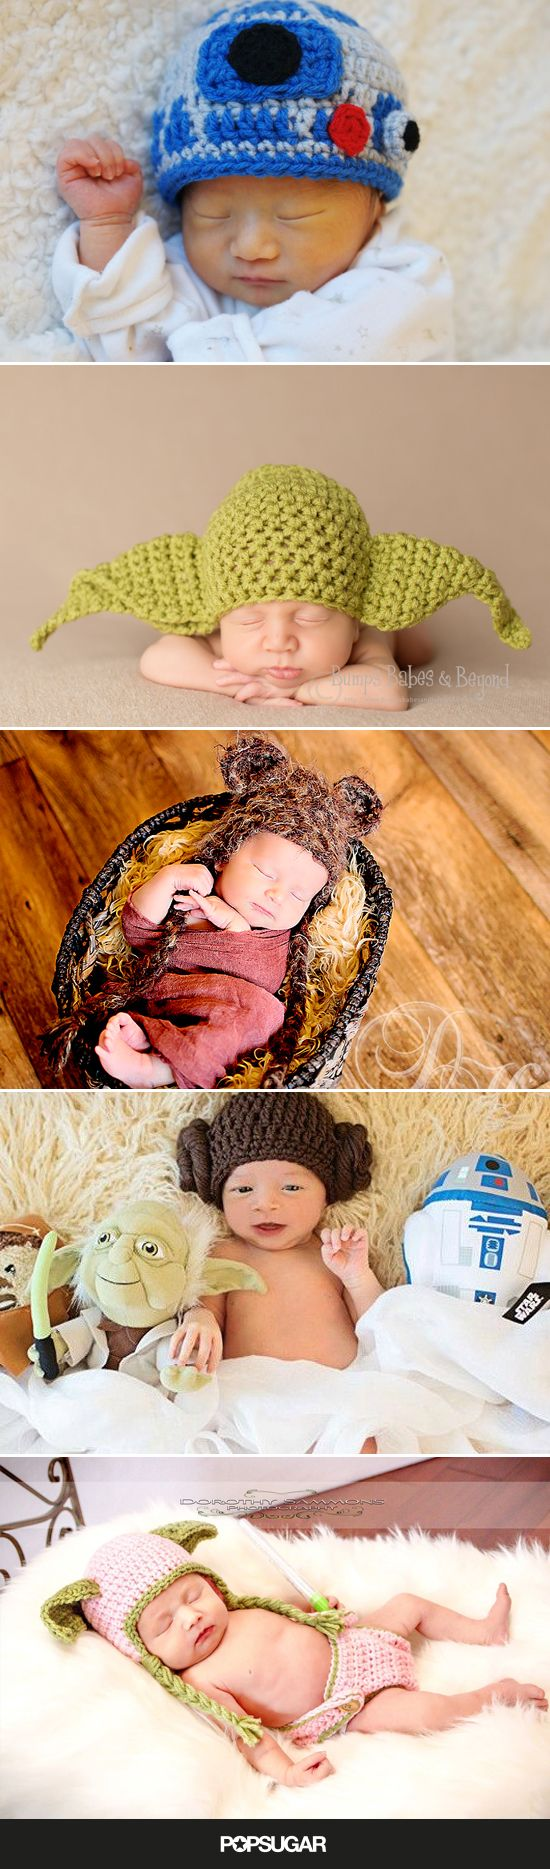 The Force Is Strong With These Adorable Crocheted Star Wars Items For Babies